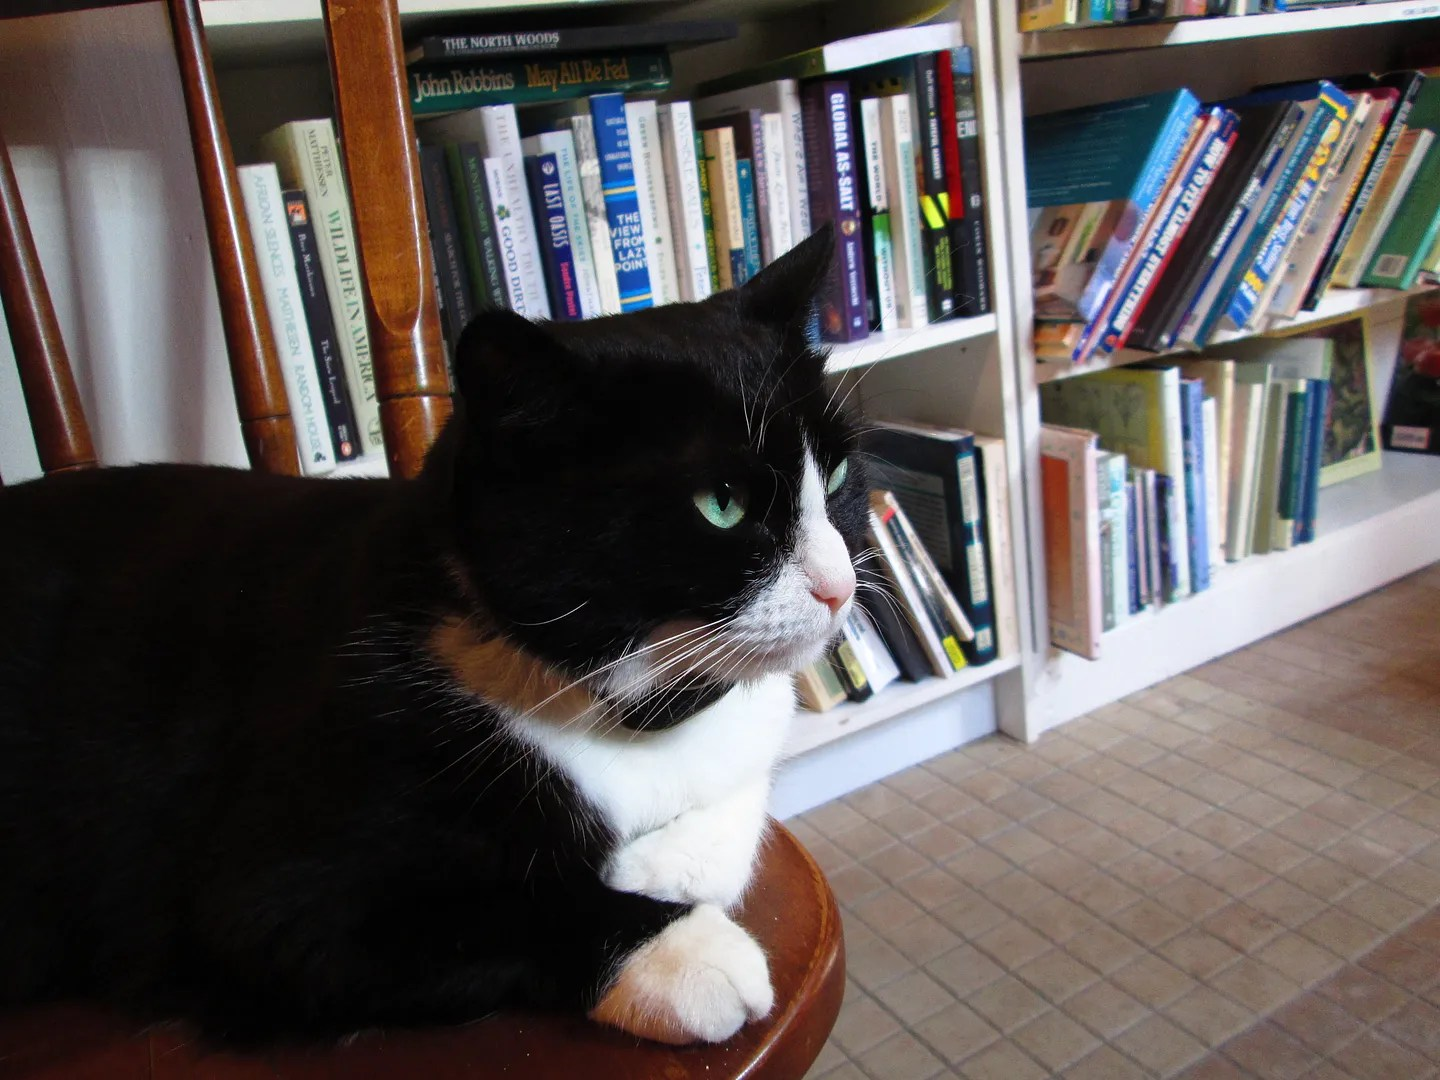 boswell cat sitting on chair near bookshelf